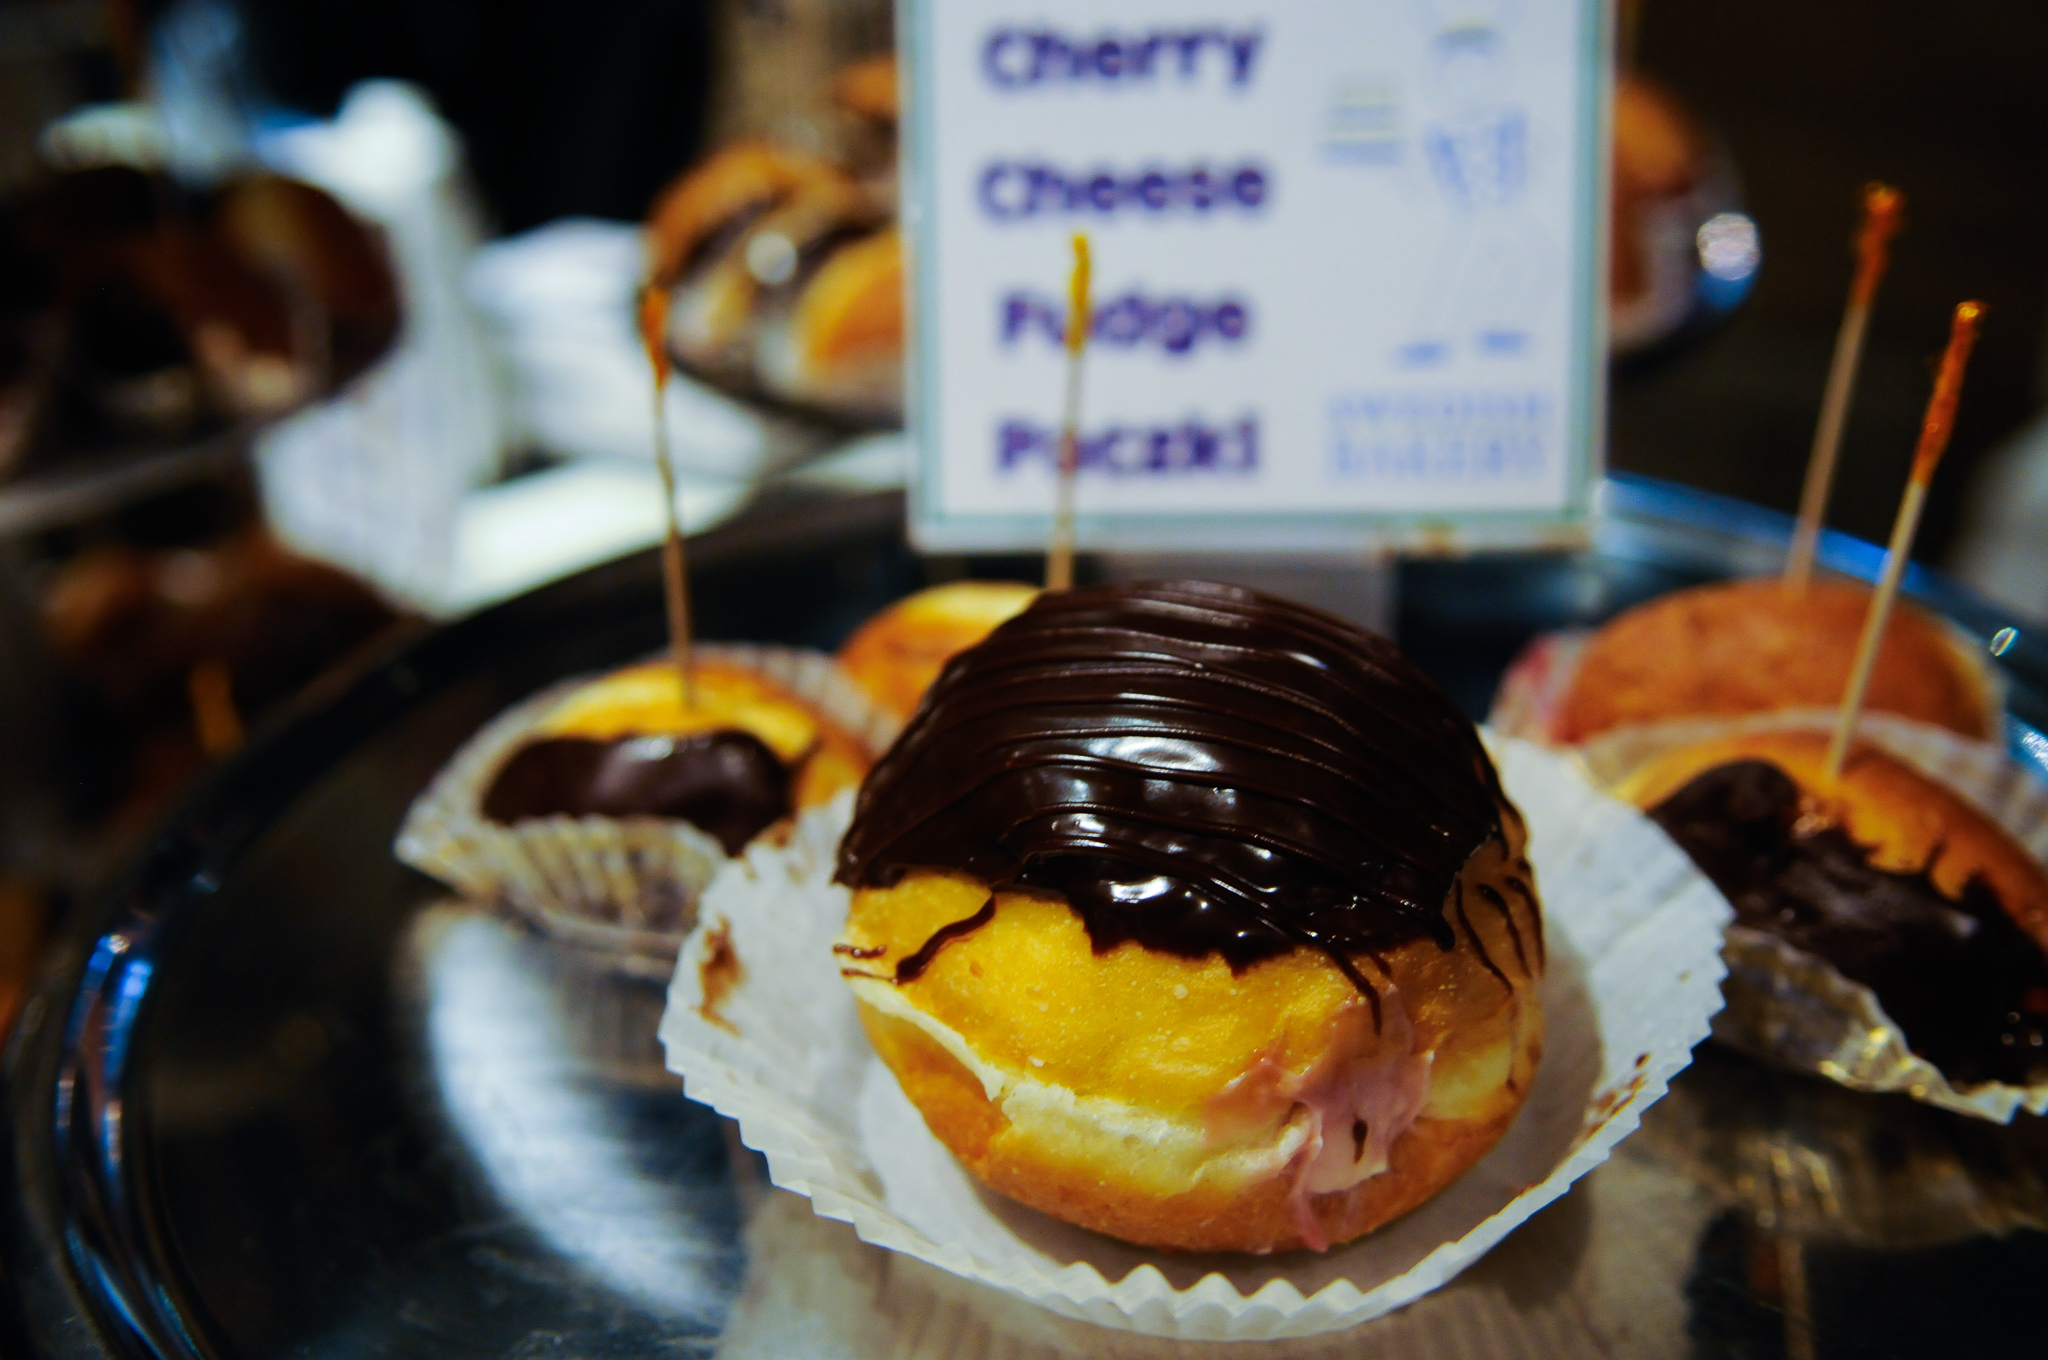 ​The second annual Donut Fest was held yesterday at 1st Ward in Wicker Park.